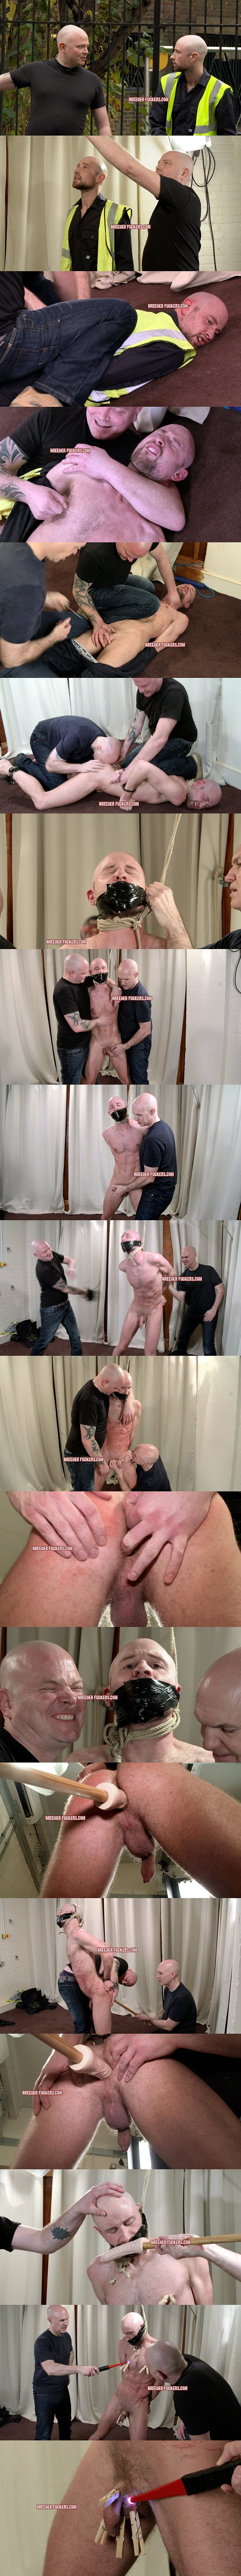 Straight gruff workman Drew gets tied up, flogged, thrashed, punched, finger and dildo fucked and electro shocked at Breederfuckers 02